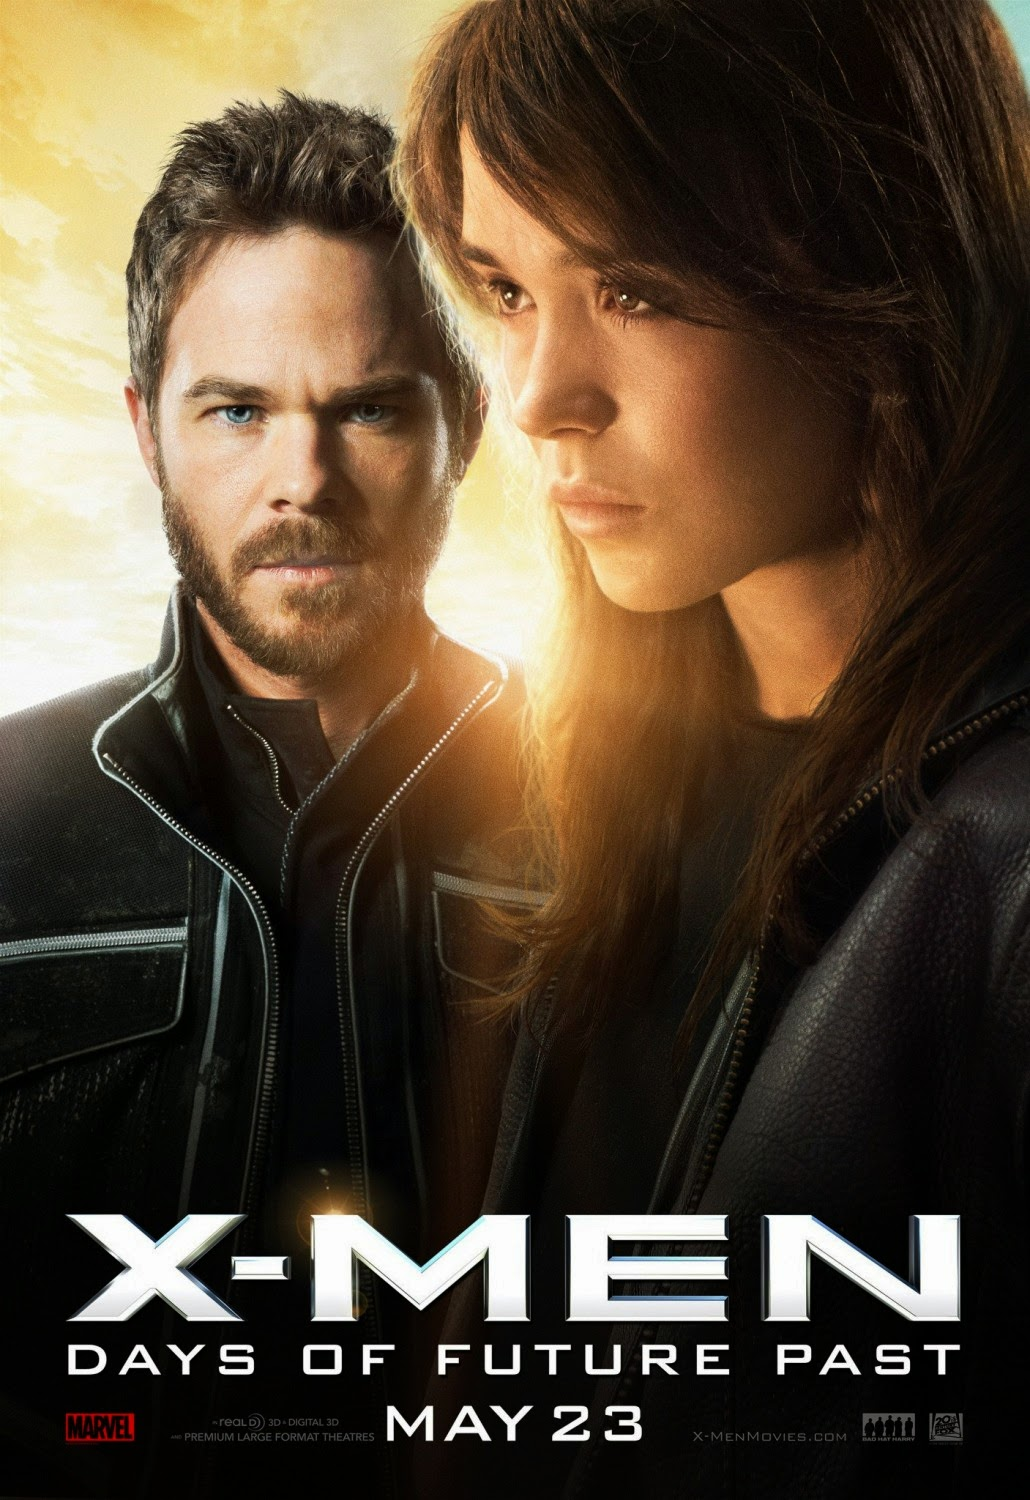 X-Men Days of Future Past Character Movie Poster Set - Shawn Ashmore as Iceman & Ellen Page as Kitty Pryde